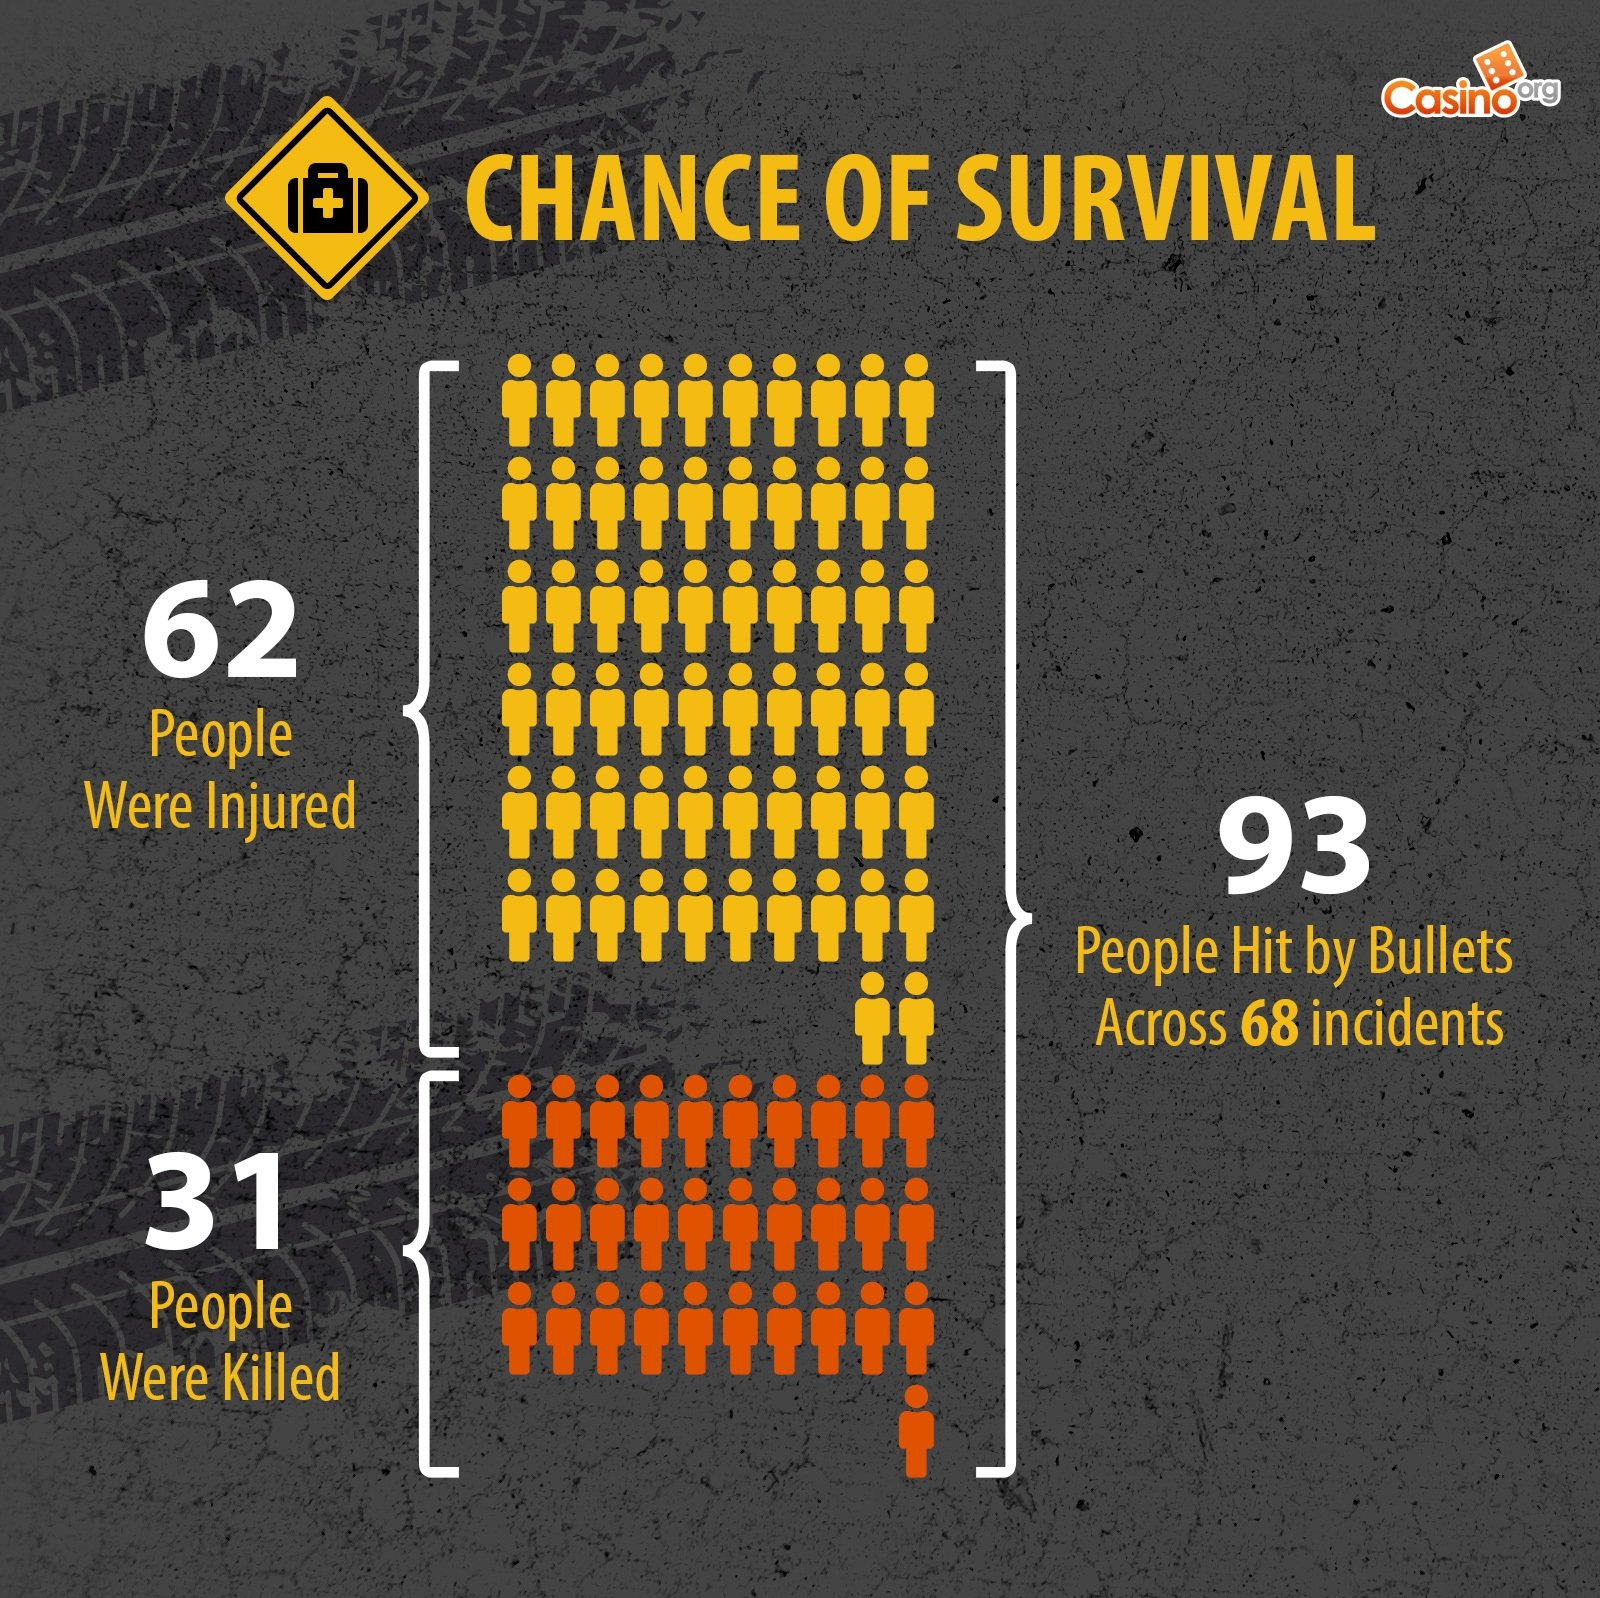 The chance of survival if you're shot in a drive-by